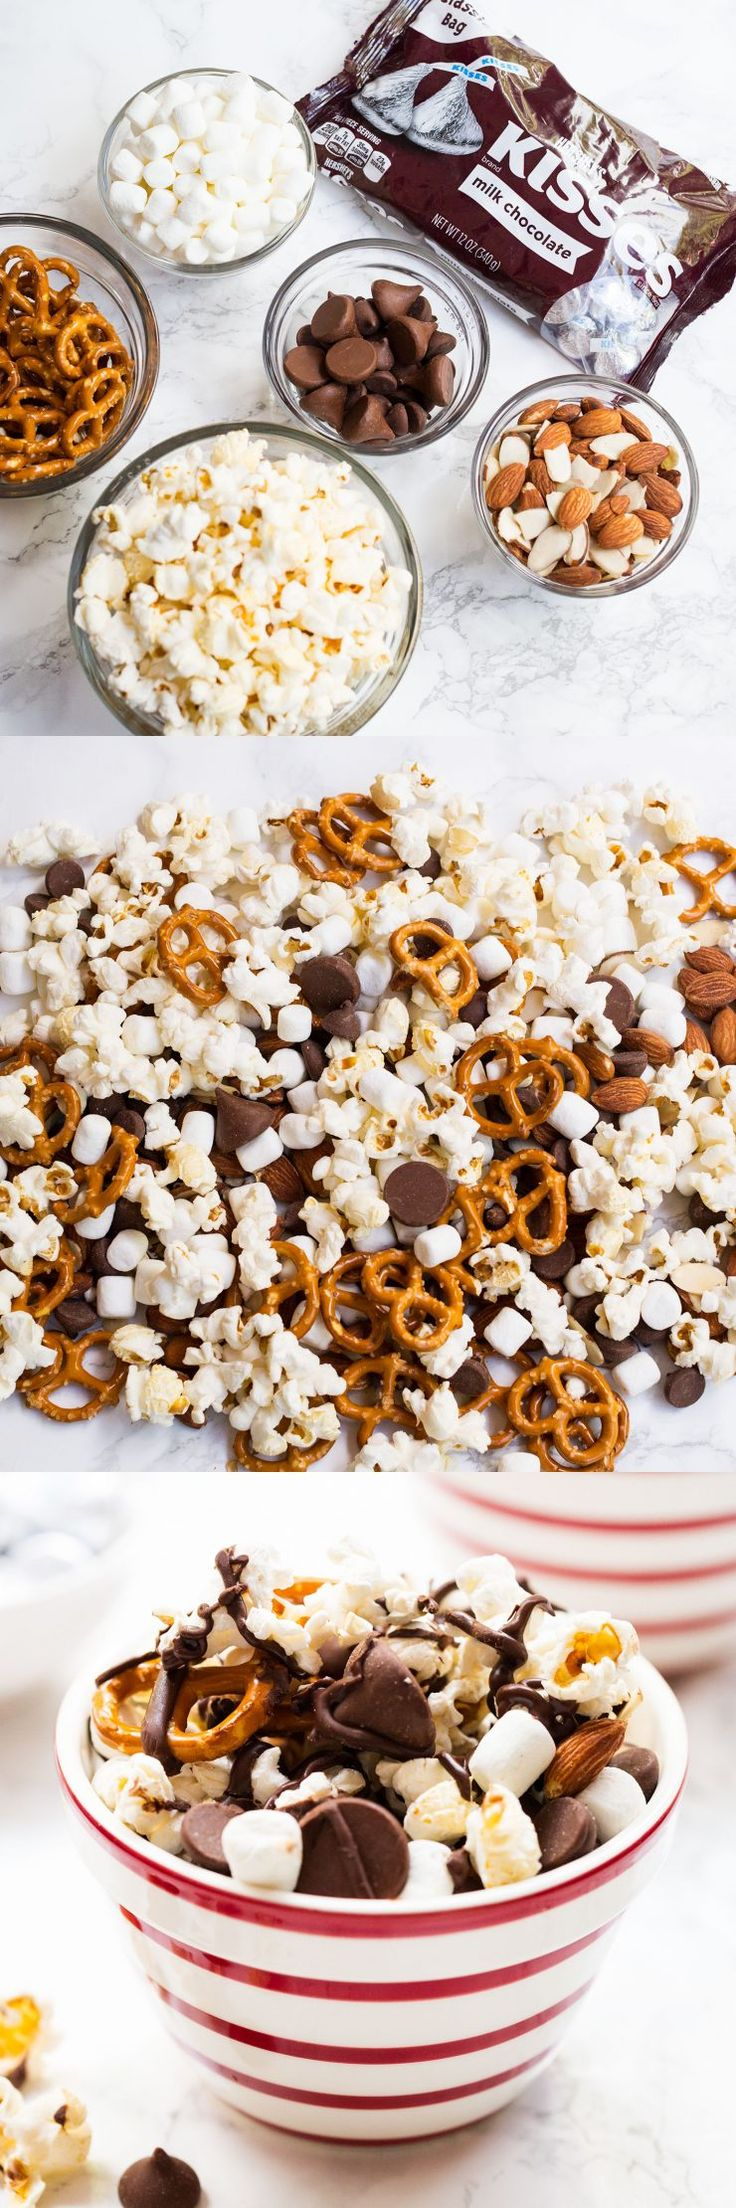 This easy S'mores Snack Mix would be a great treat to enjoy while watching holiday movies!